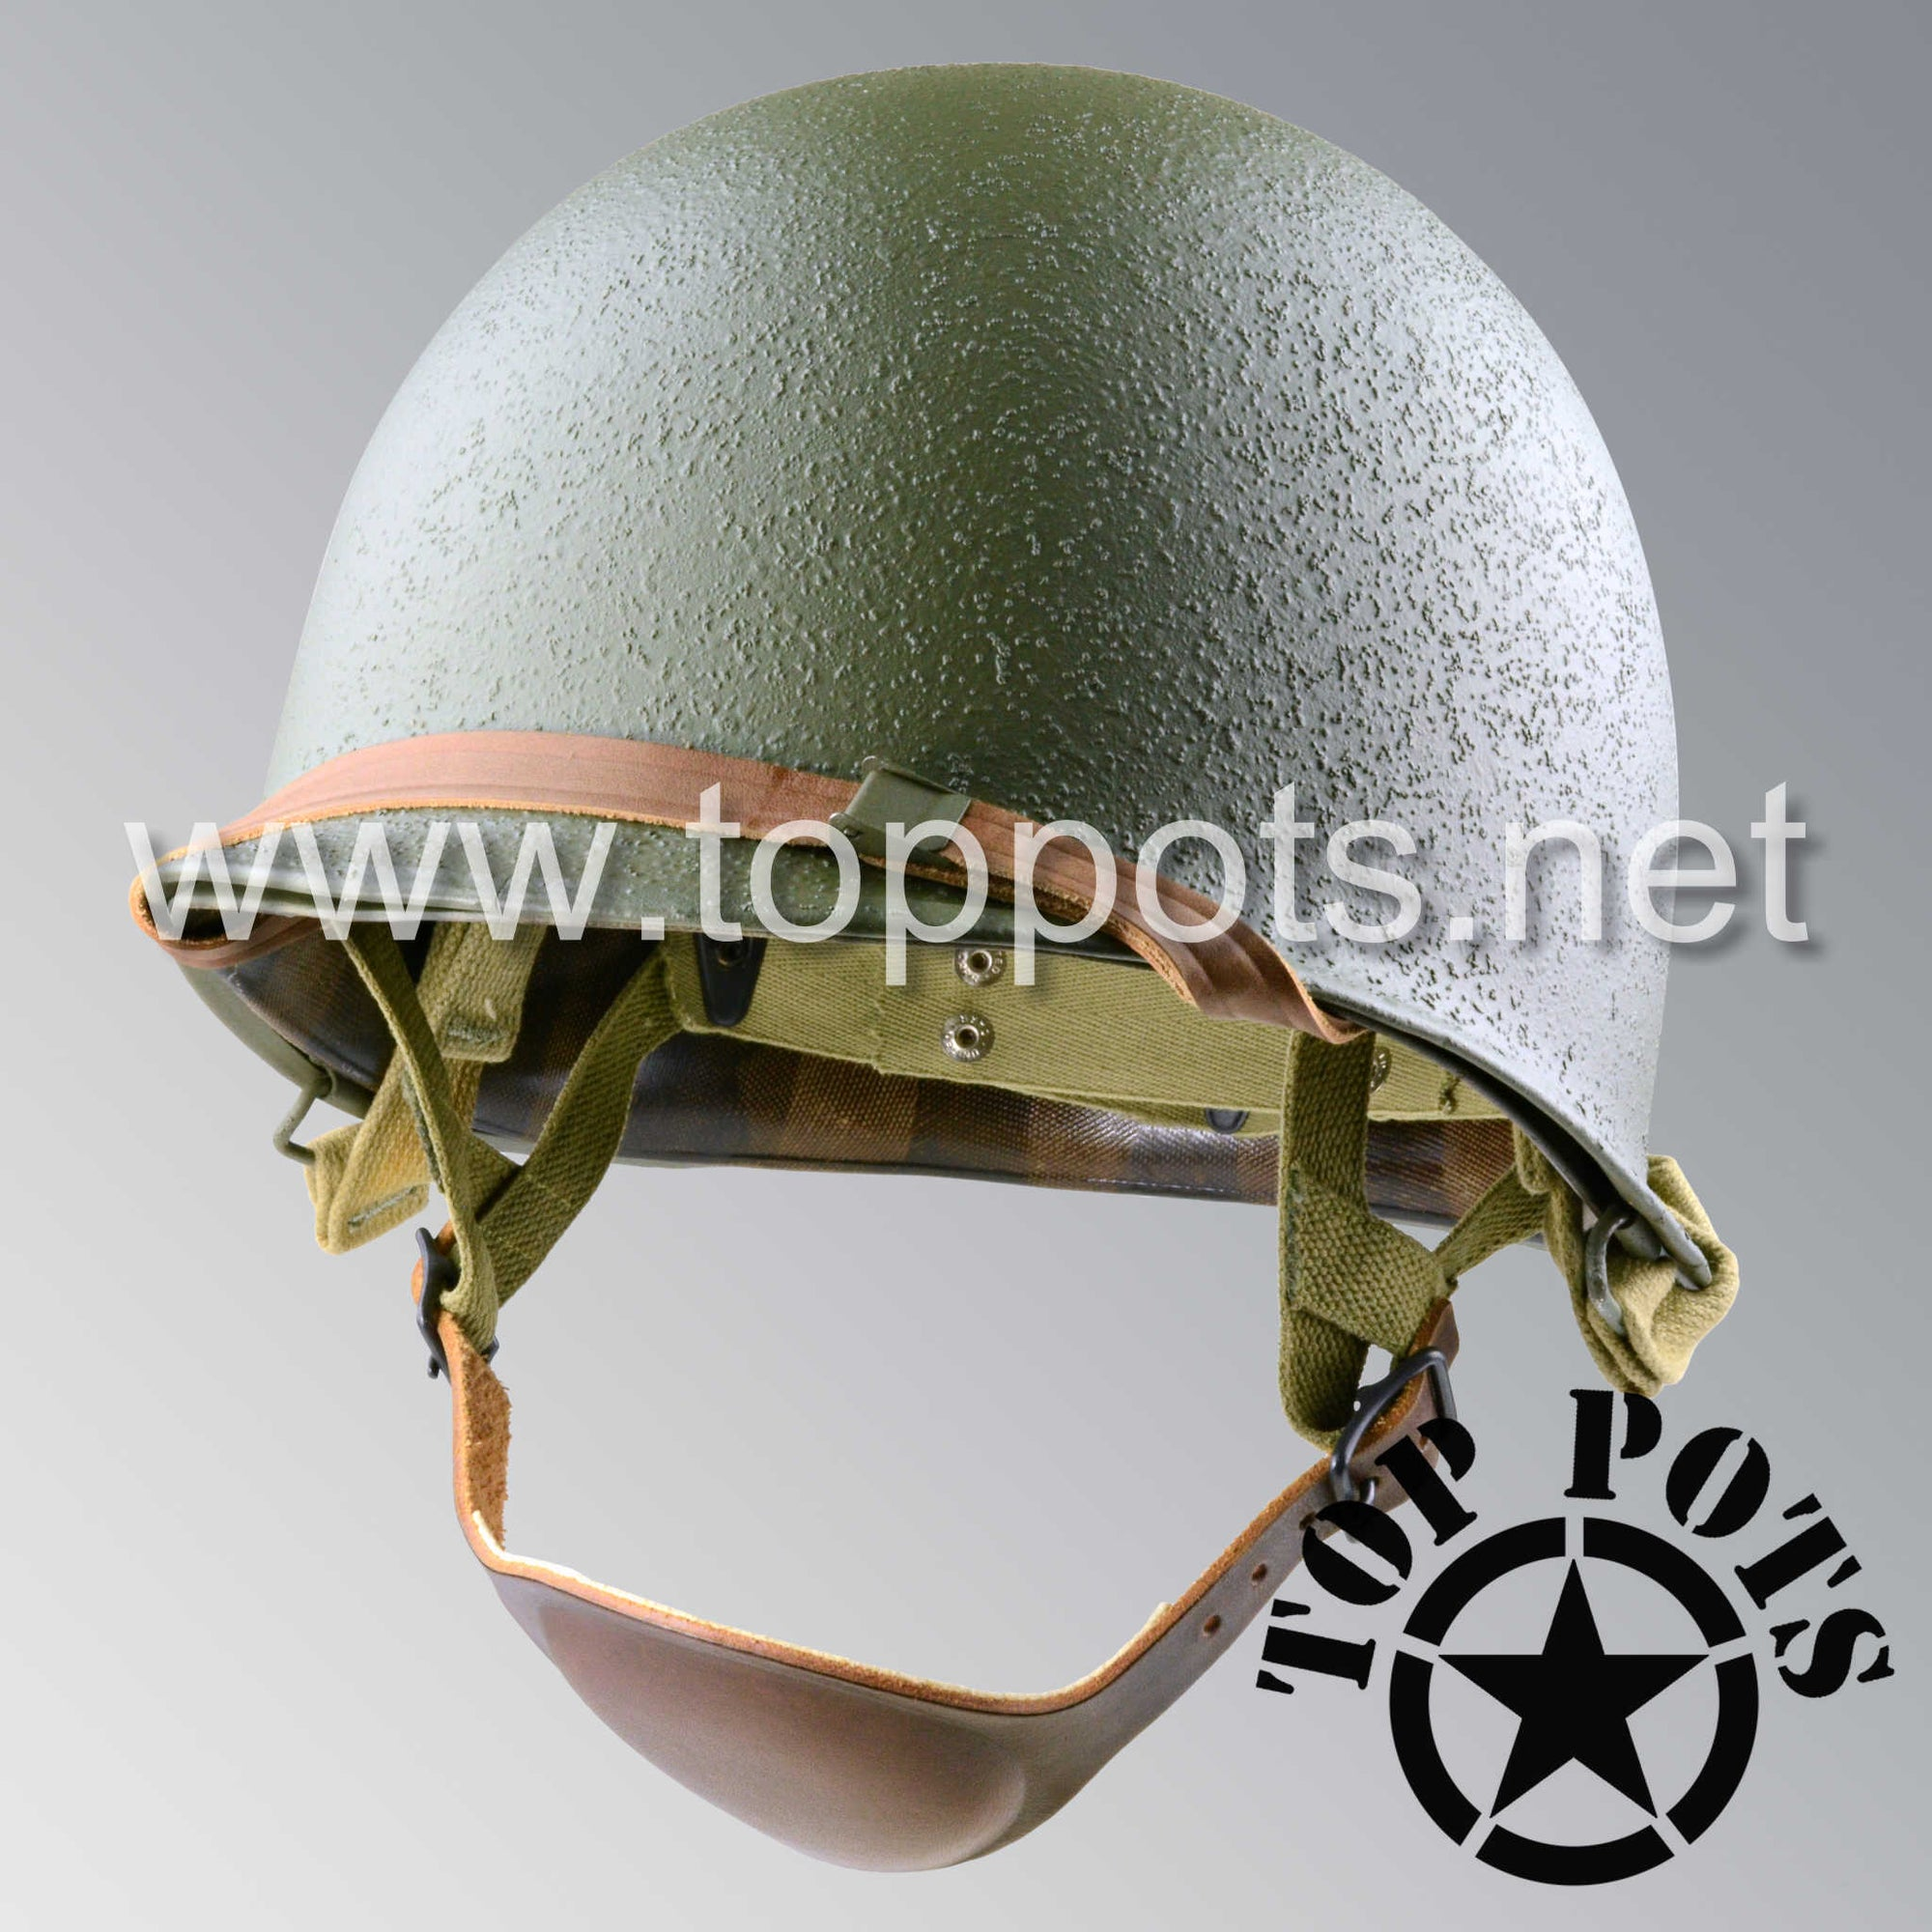 Image 1 of WWII US Army Restored Original M1C Paratrooper Airborne Helmet Swivel Bale Shell and Liner with Inland A Straps